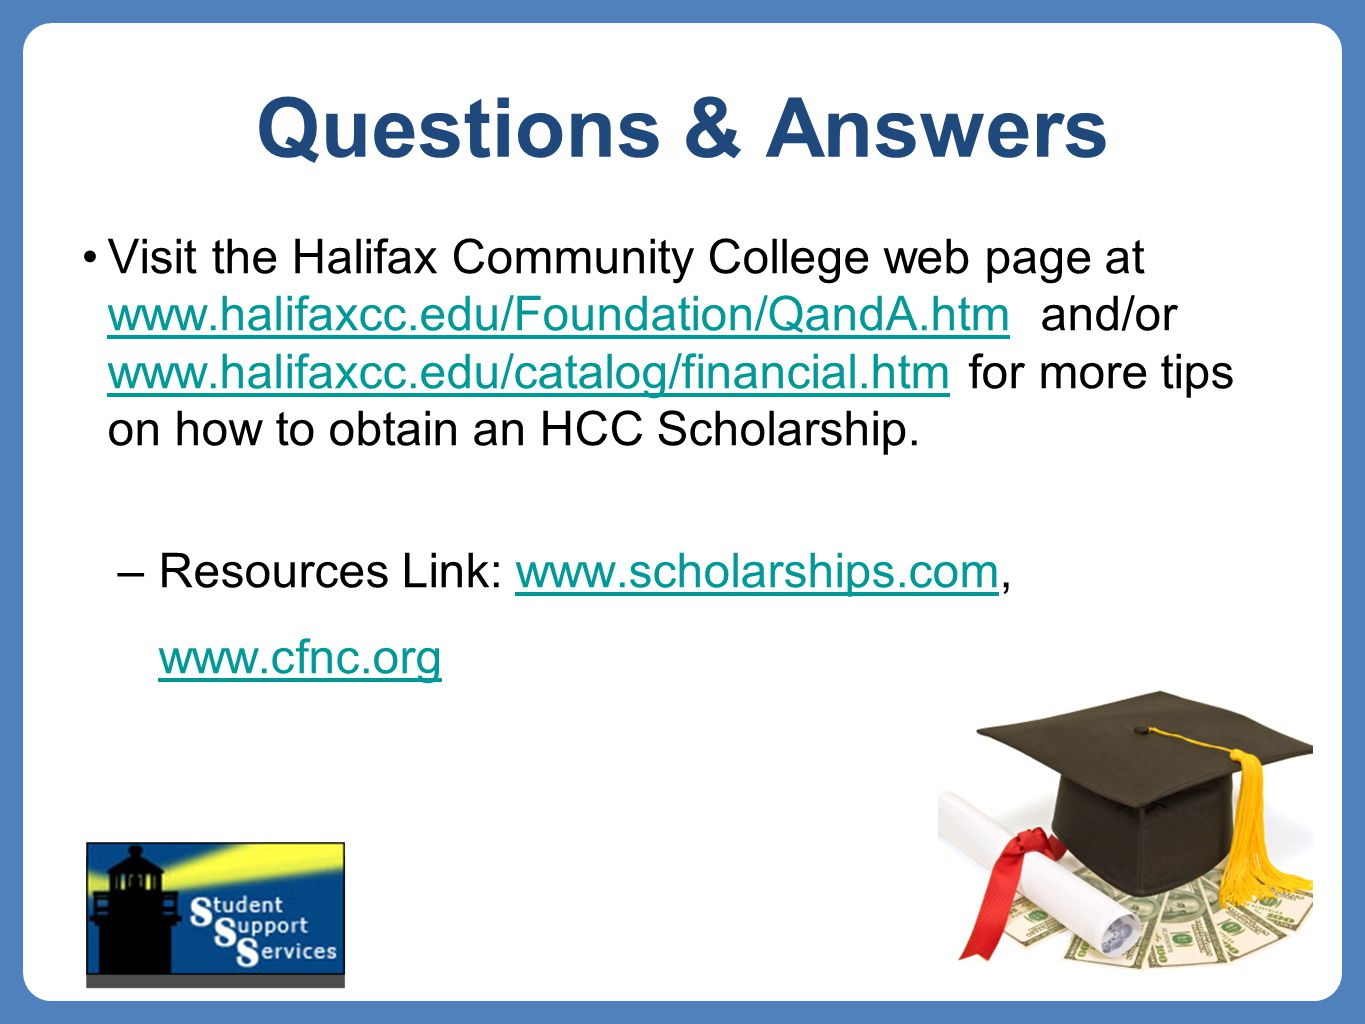 Visit the Halifax Community College web page at www.halifaxcc.edu/Foundation/QandA.htm and/or www.halifaxcc.edu/catalog/financial.htm for more tips on how to obtain an HCC Scholarship.